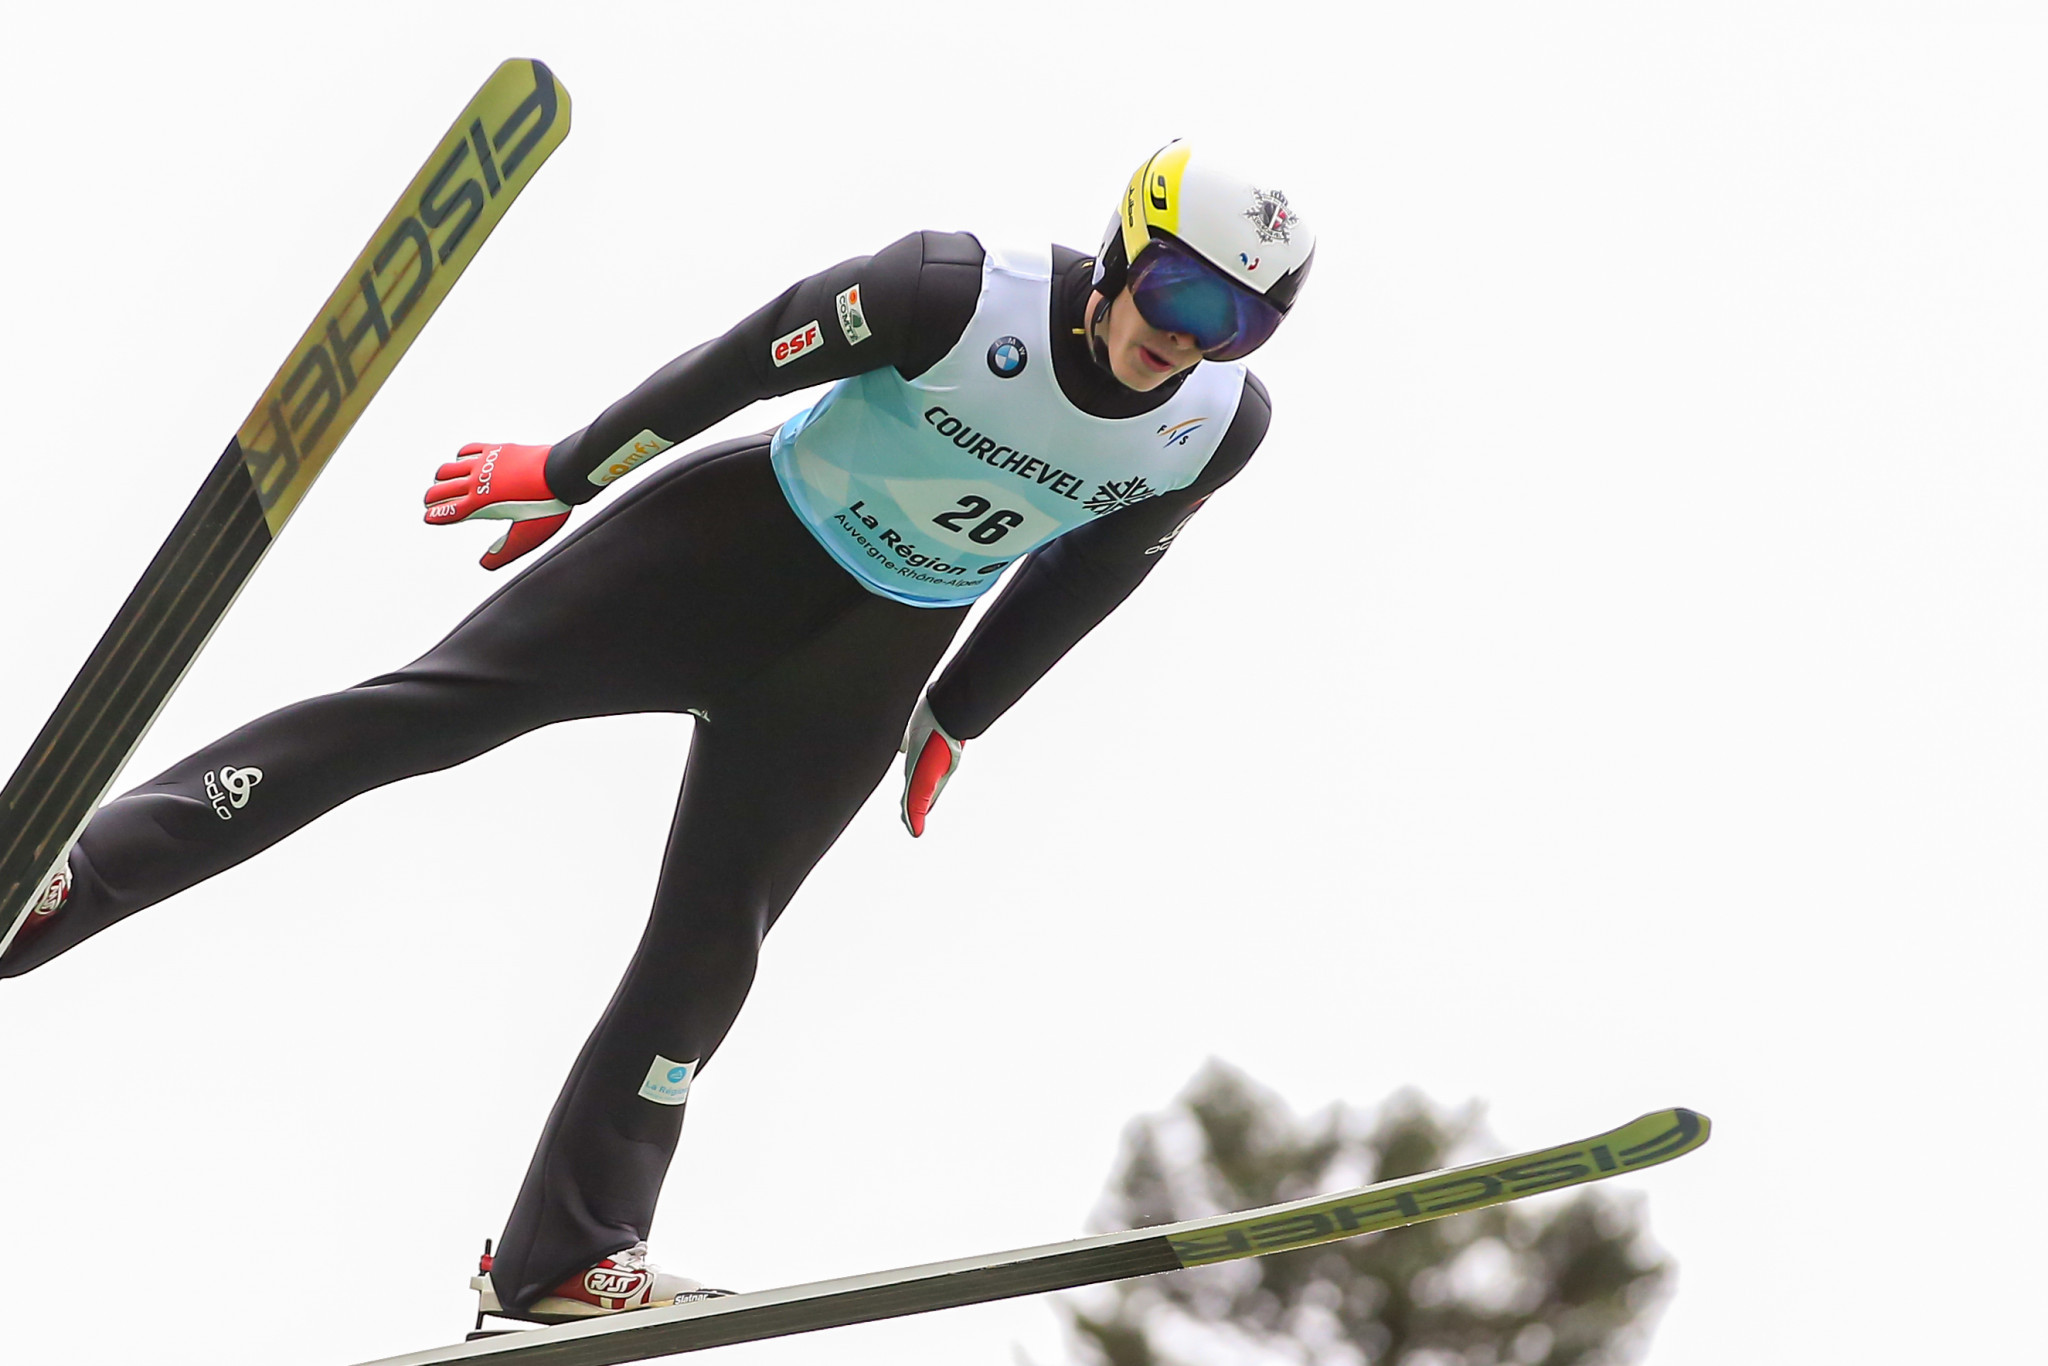 Jonathan Learoyd is one of France's hopes in ski jumping ©Getty Images